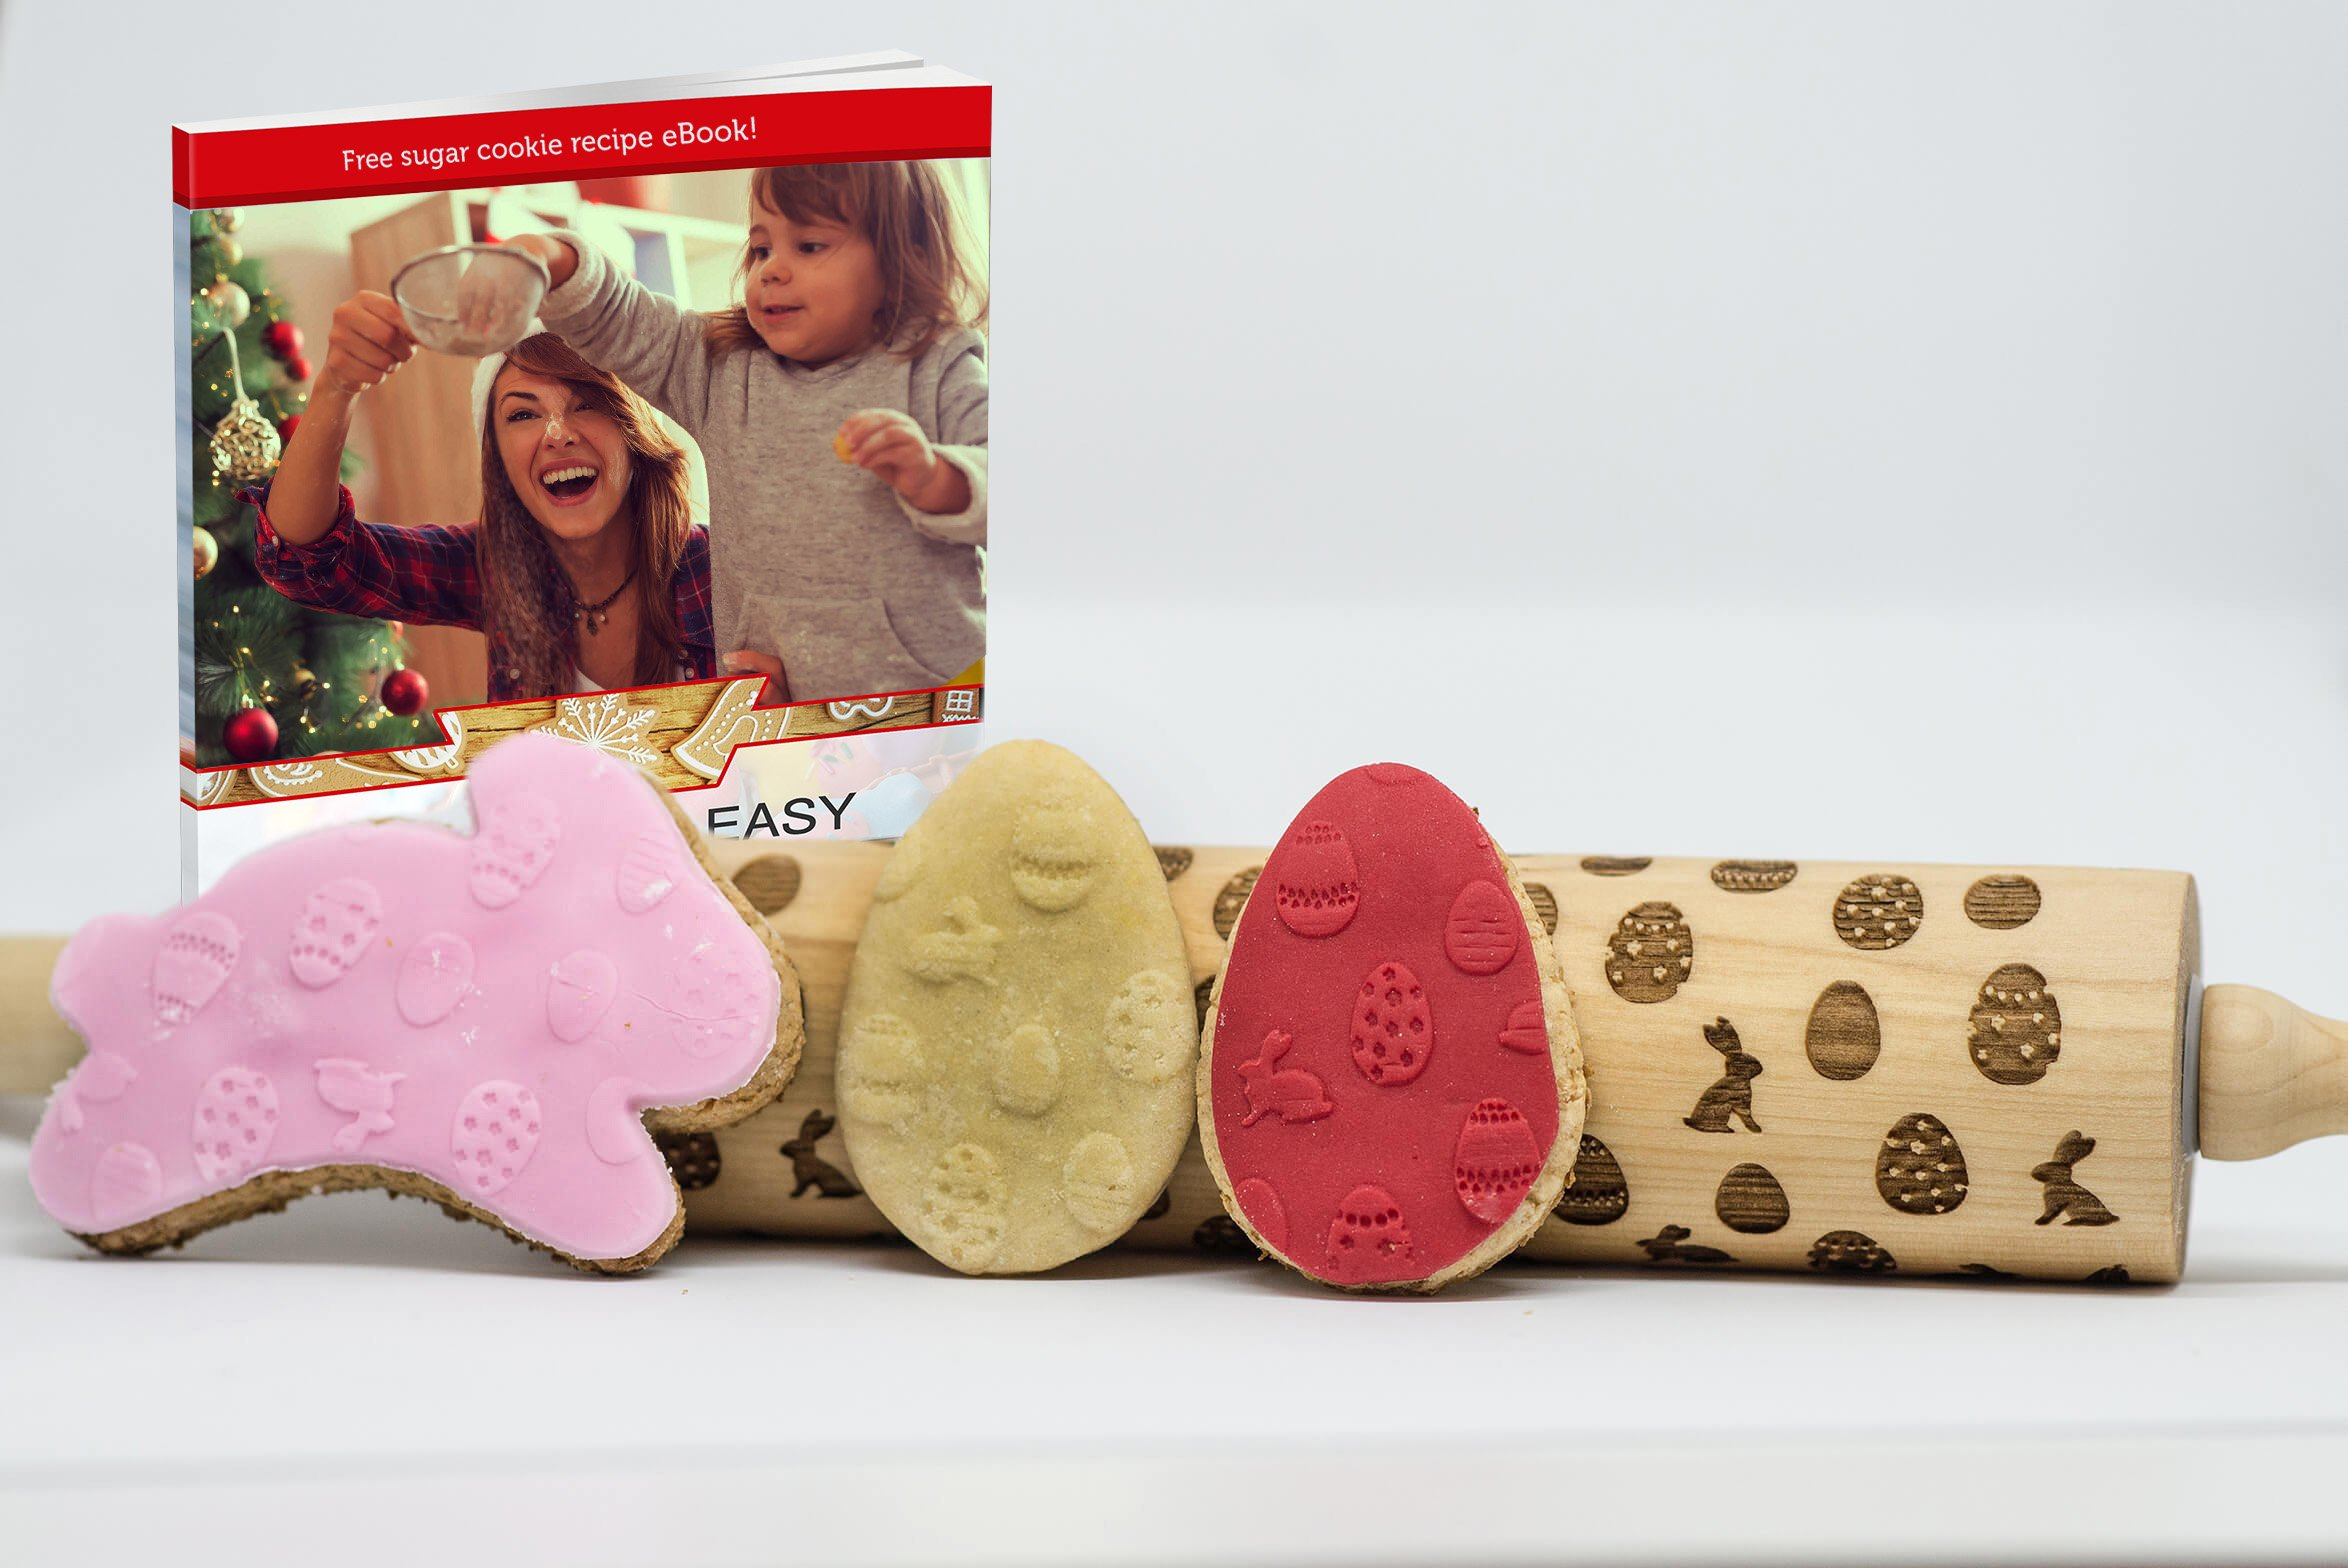 Decorative Bunny and Egg Embossed Rolling Pin for baking, Beautiful Laser Engraved Bamboo wood material makes amazing textured cookies and fondant, Perfect for the Easter, Great gift idea!